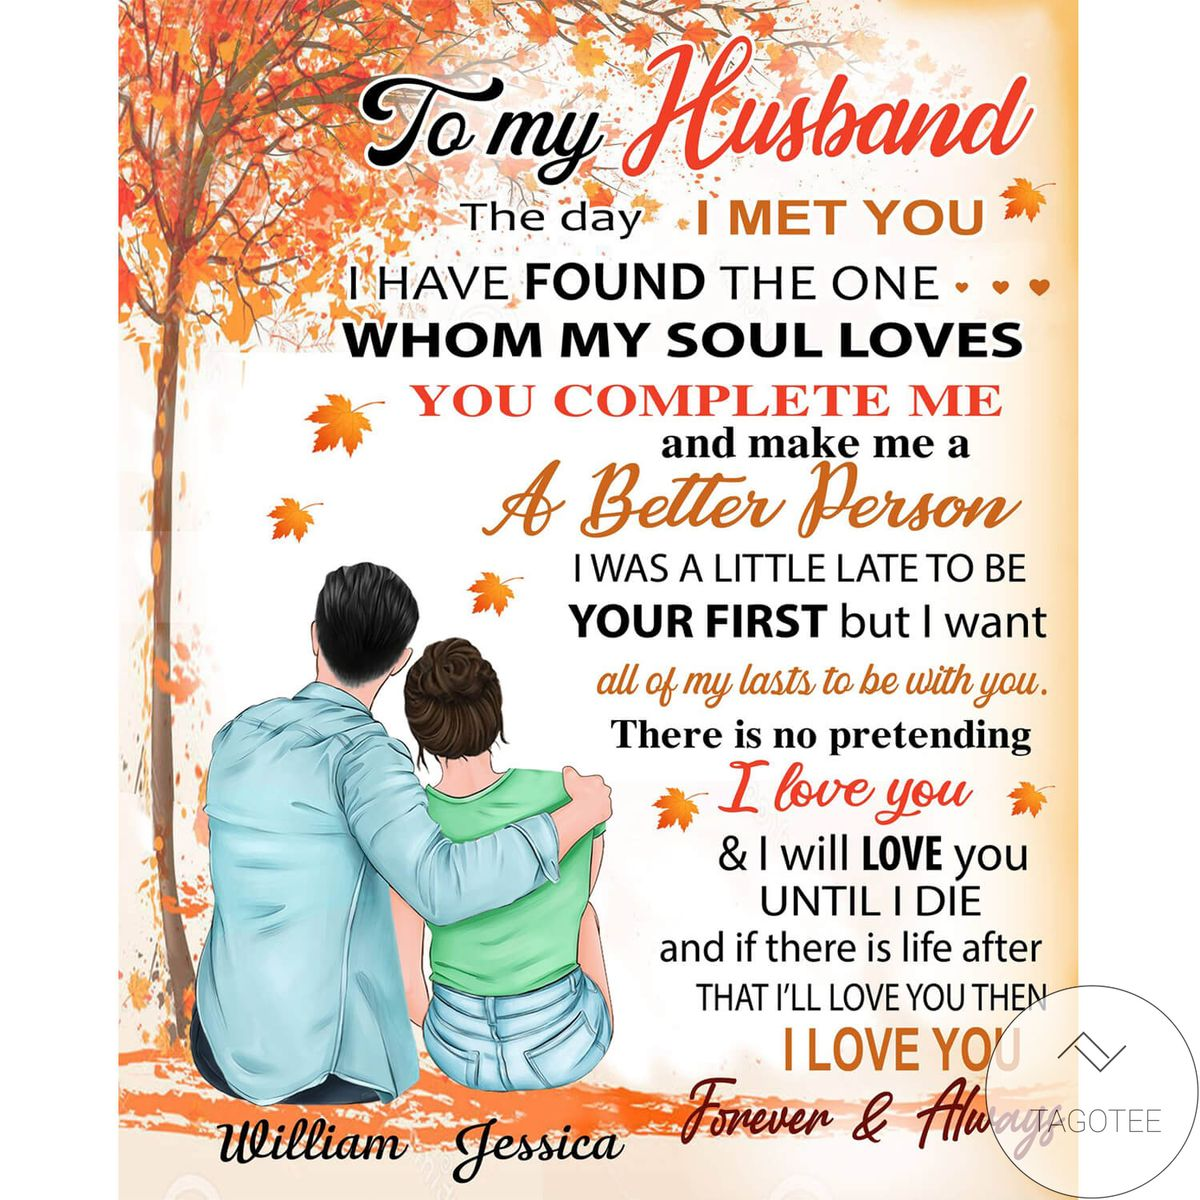 Where To Buy Personalized To My Husband From Wife The Day I Met You Blanket